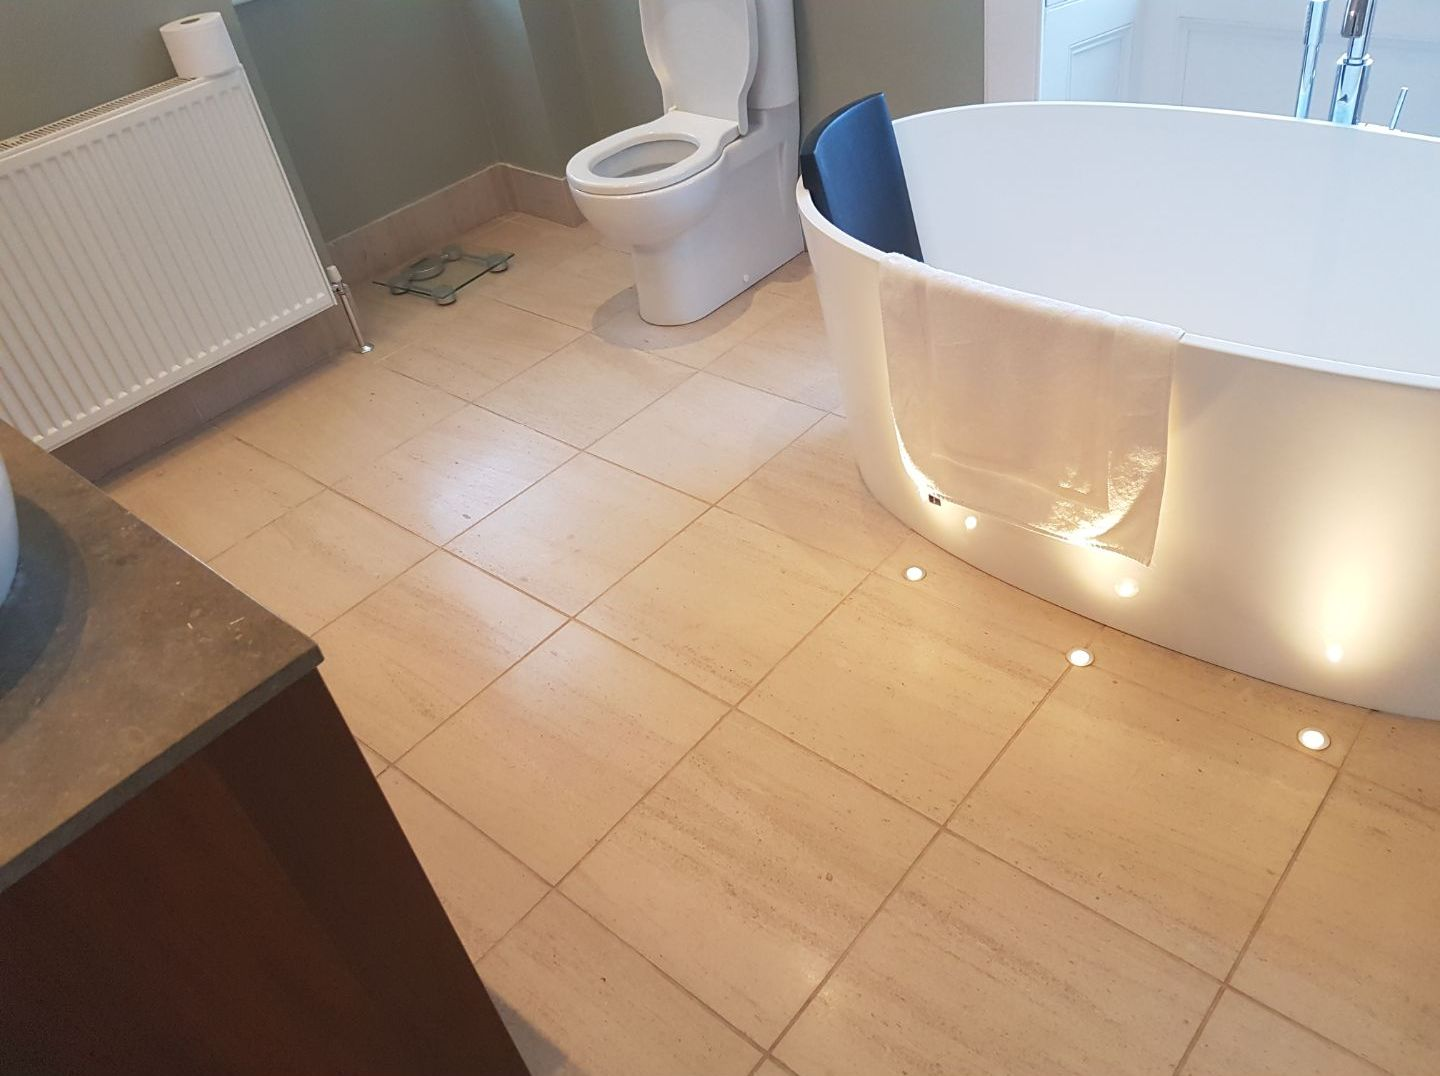 Limestone Bathroom Floor Merchiston before